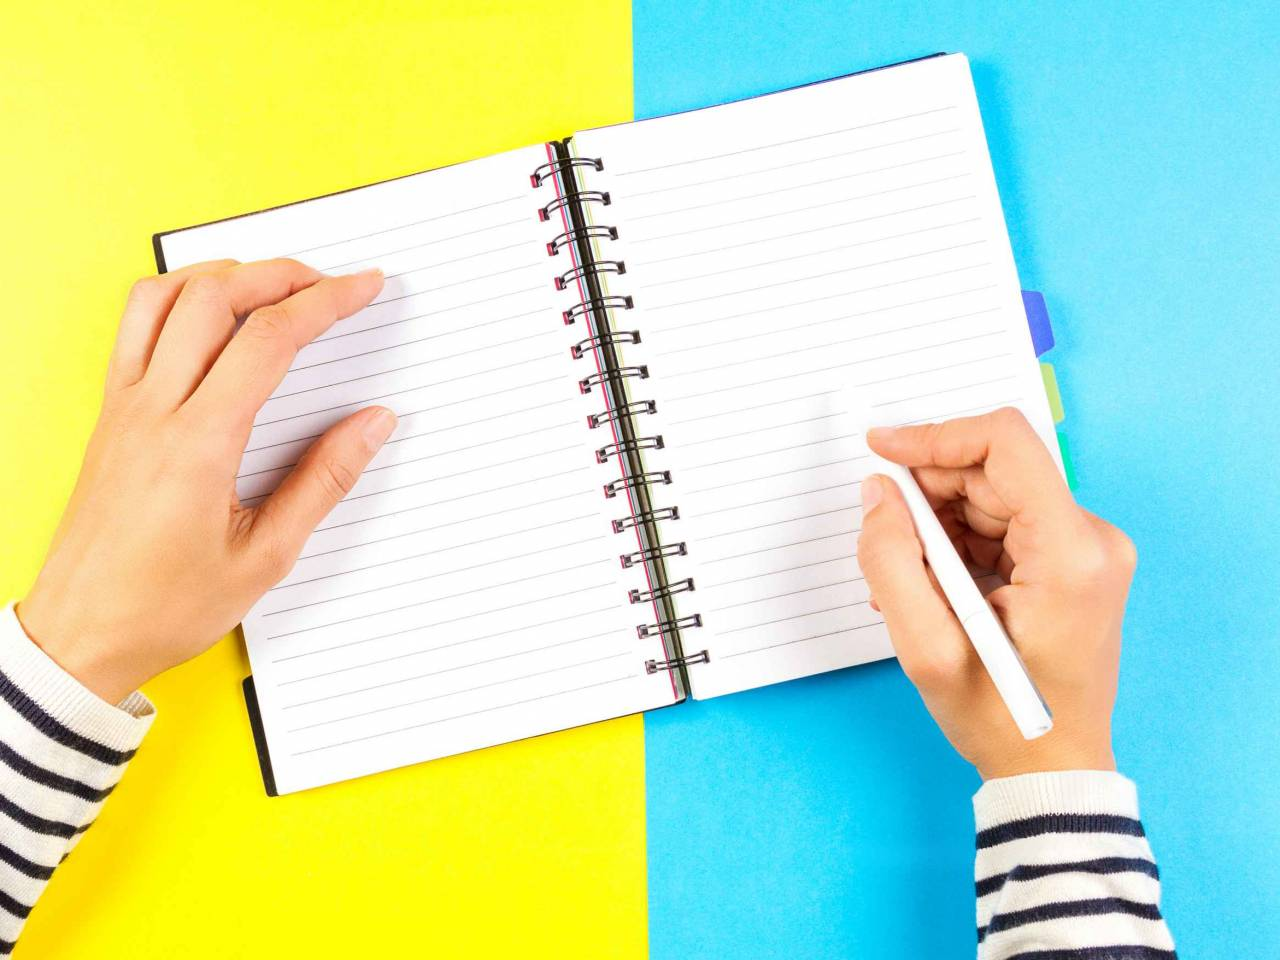 Woman hand writing in notebook over blue and yellow background.